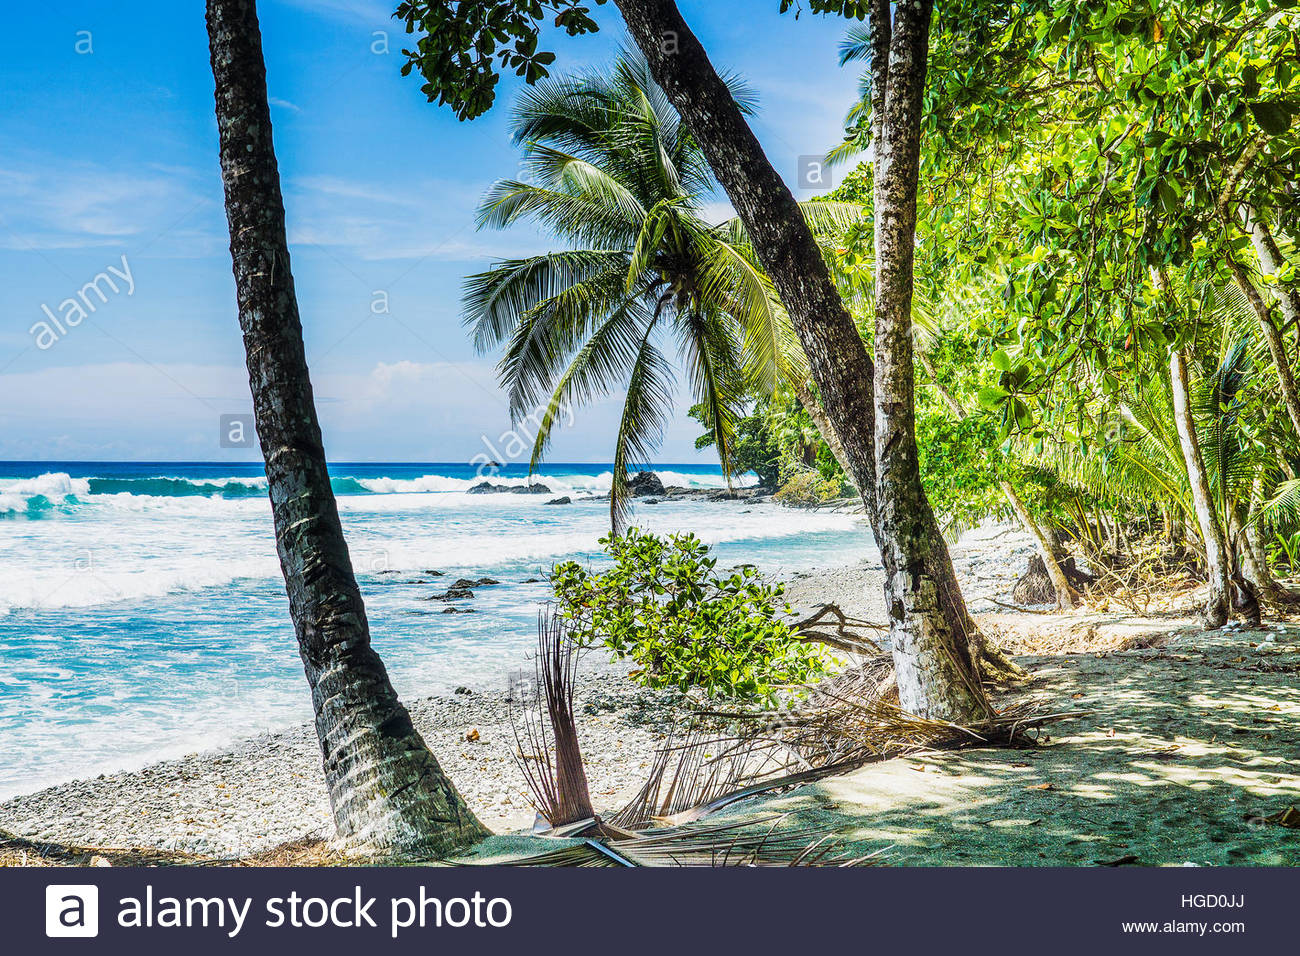 Empty beach and coast line, Costa rica, Central America 2015 Stock Photo